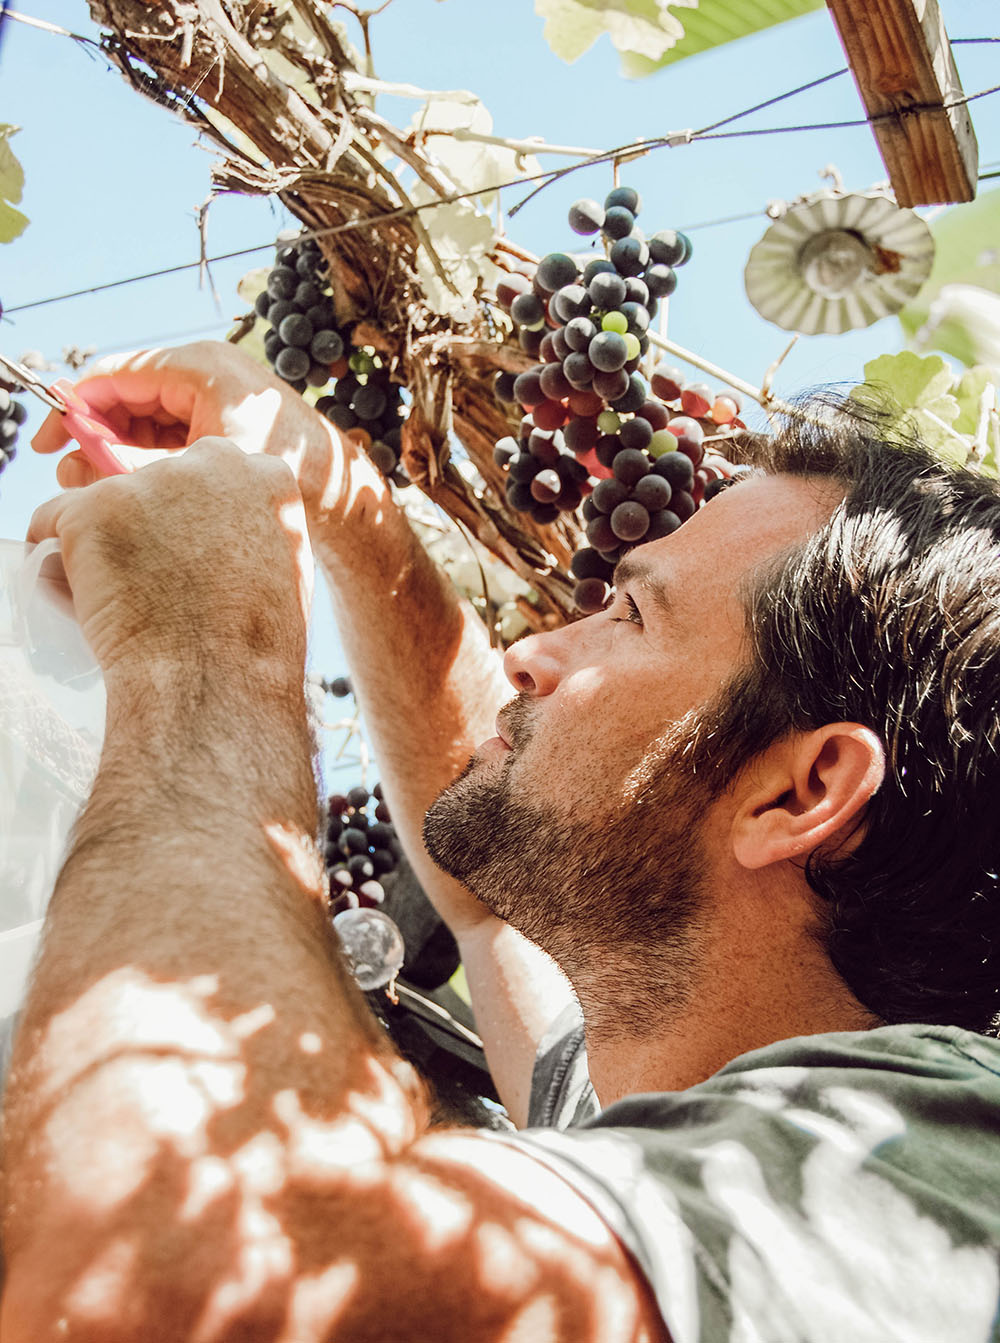 Above: Adam clipping grape clusters.